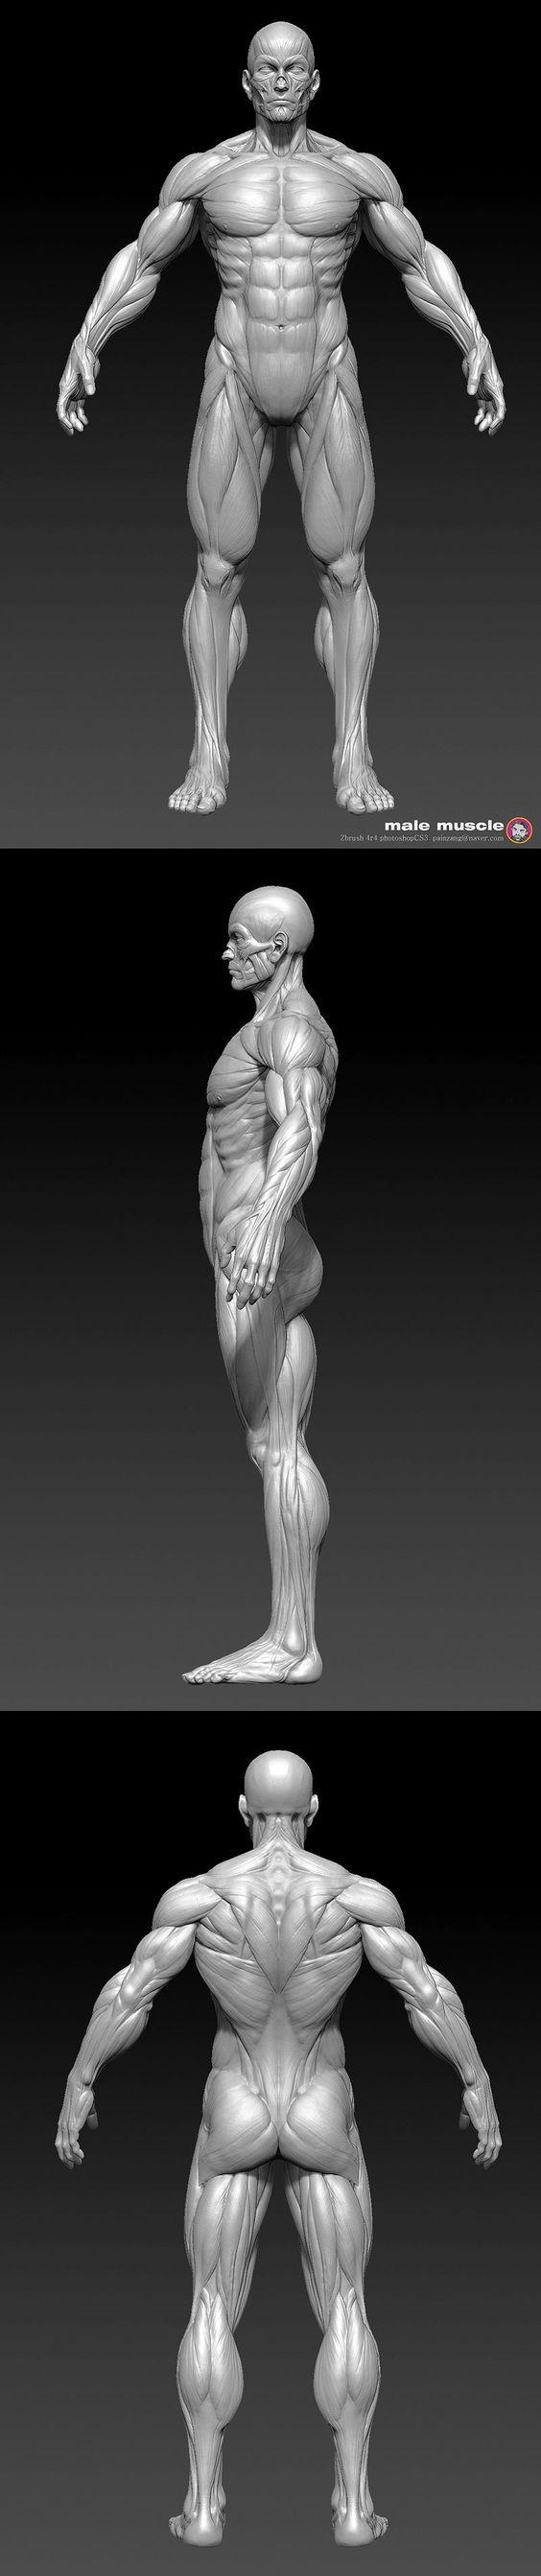 Human Anatomy 3d Sculpting Videos In Zbrush By Painzang Painzang Is